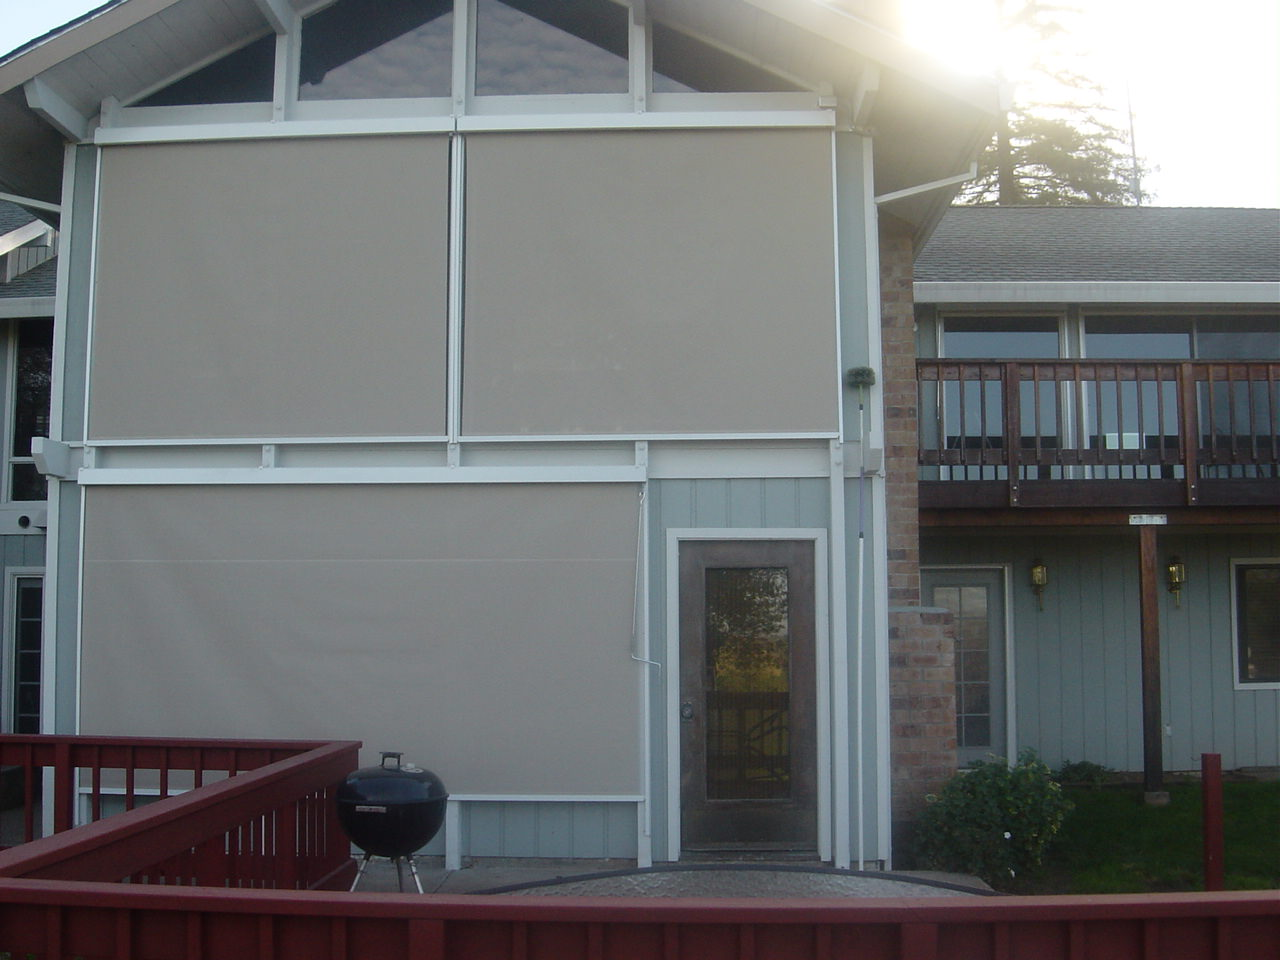 Retractable Sun Shades Vertical Screens 4 Less